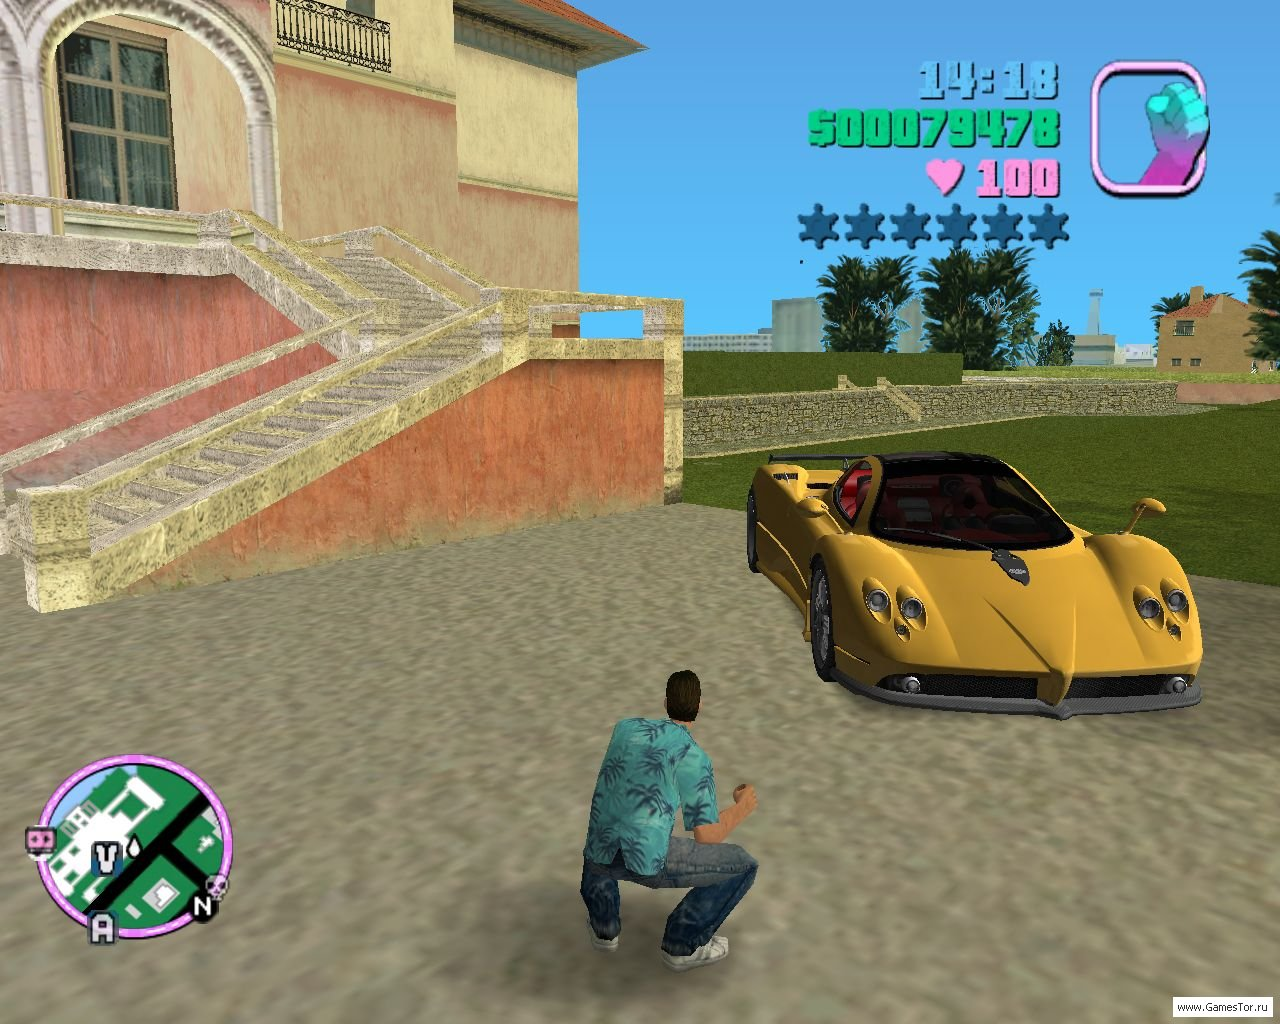 Download gta vice city deluxe torrent | tingnersrahinsaudi.